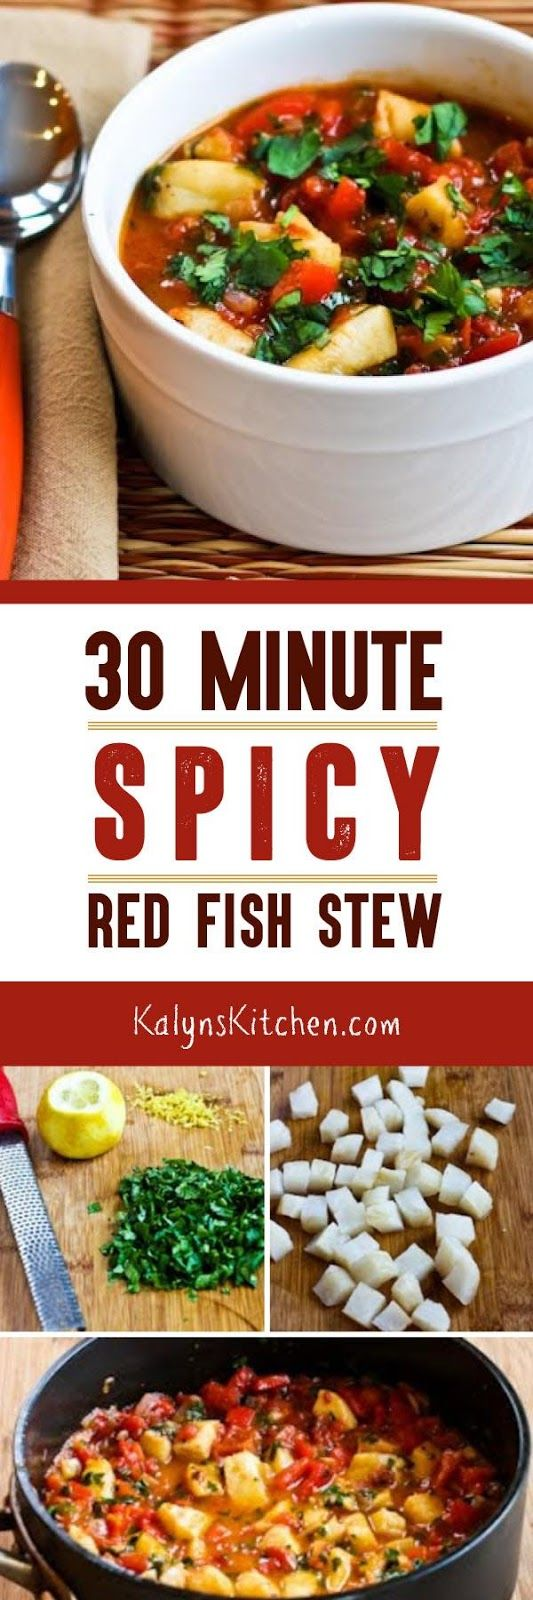 ... spicy slaw spicy red fish stew recipes dishmaps spicy red fish stew